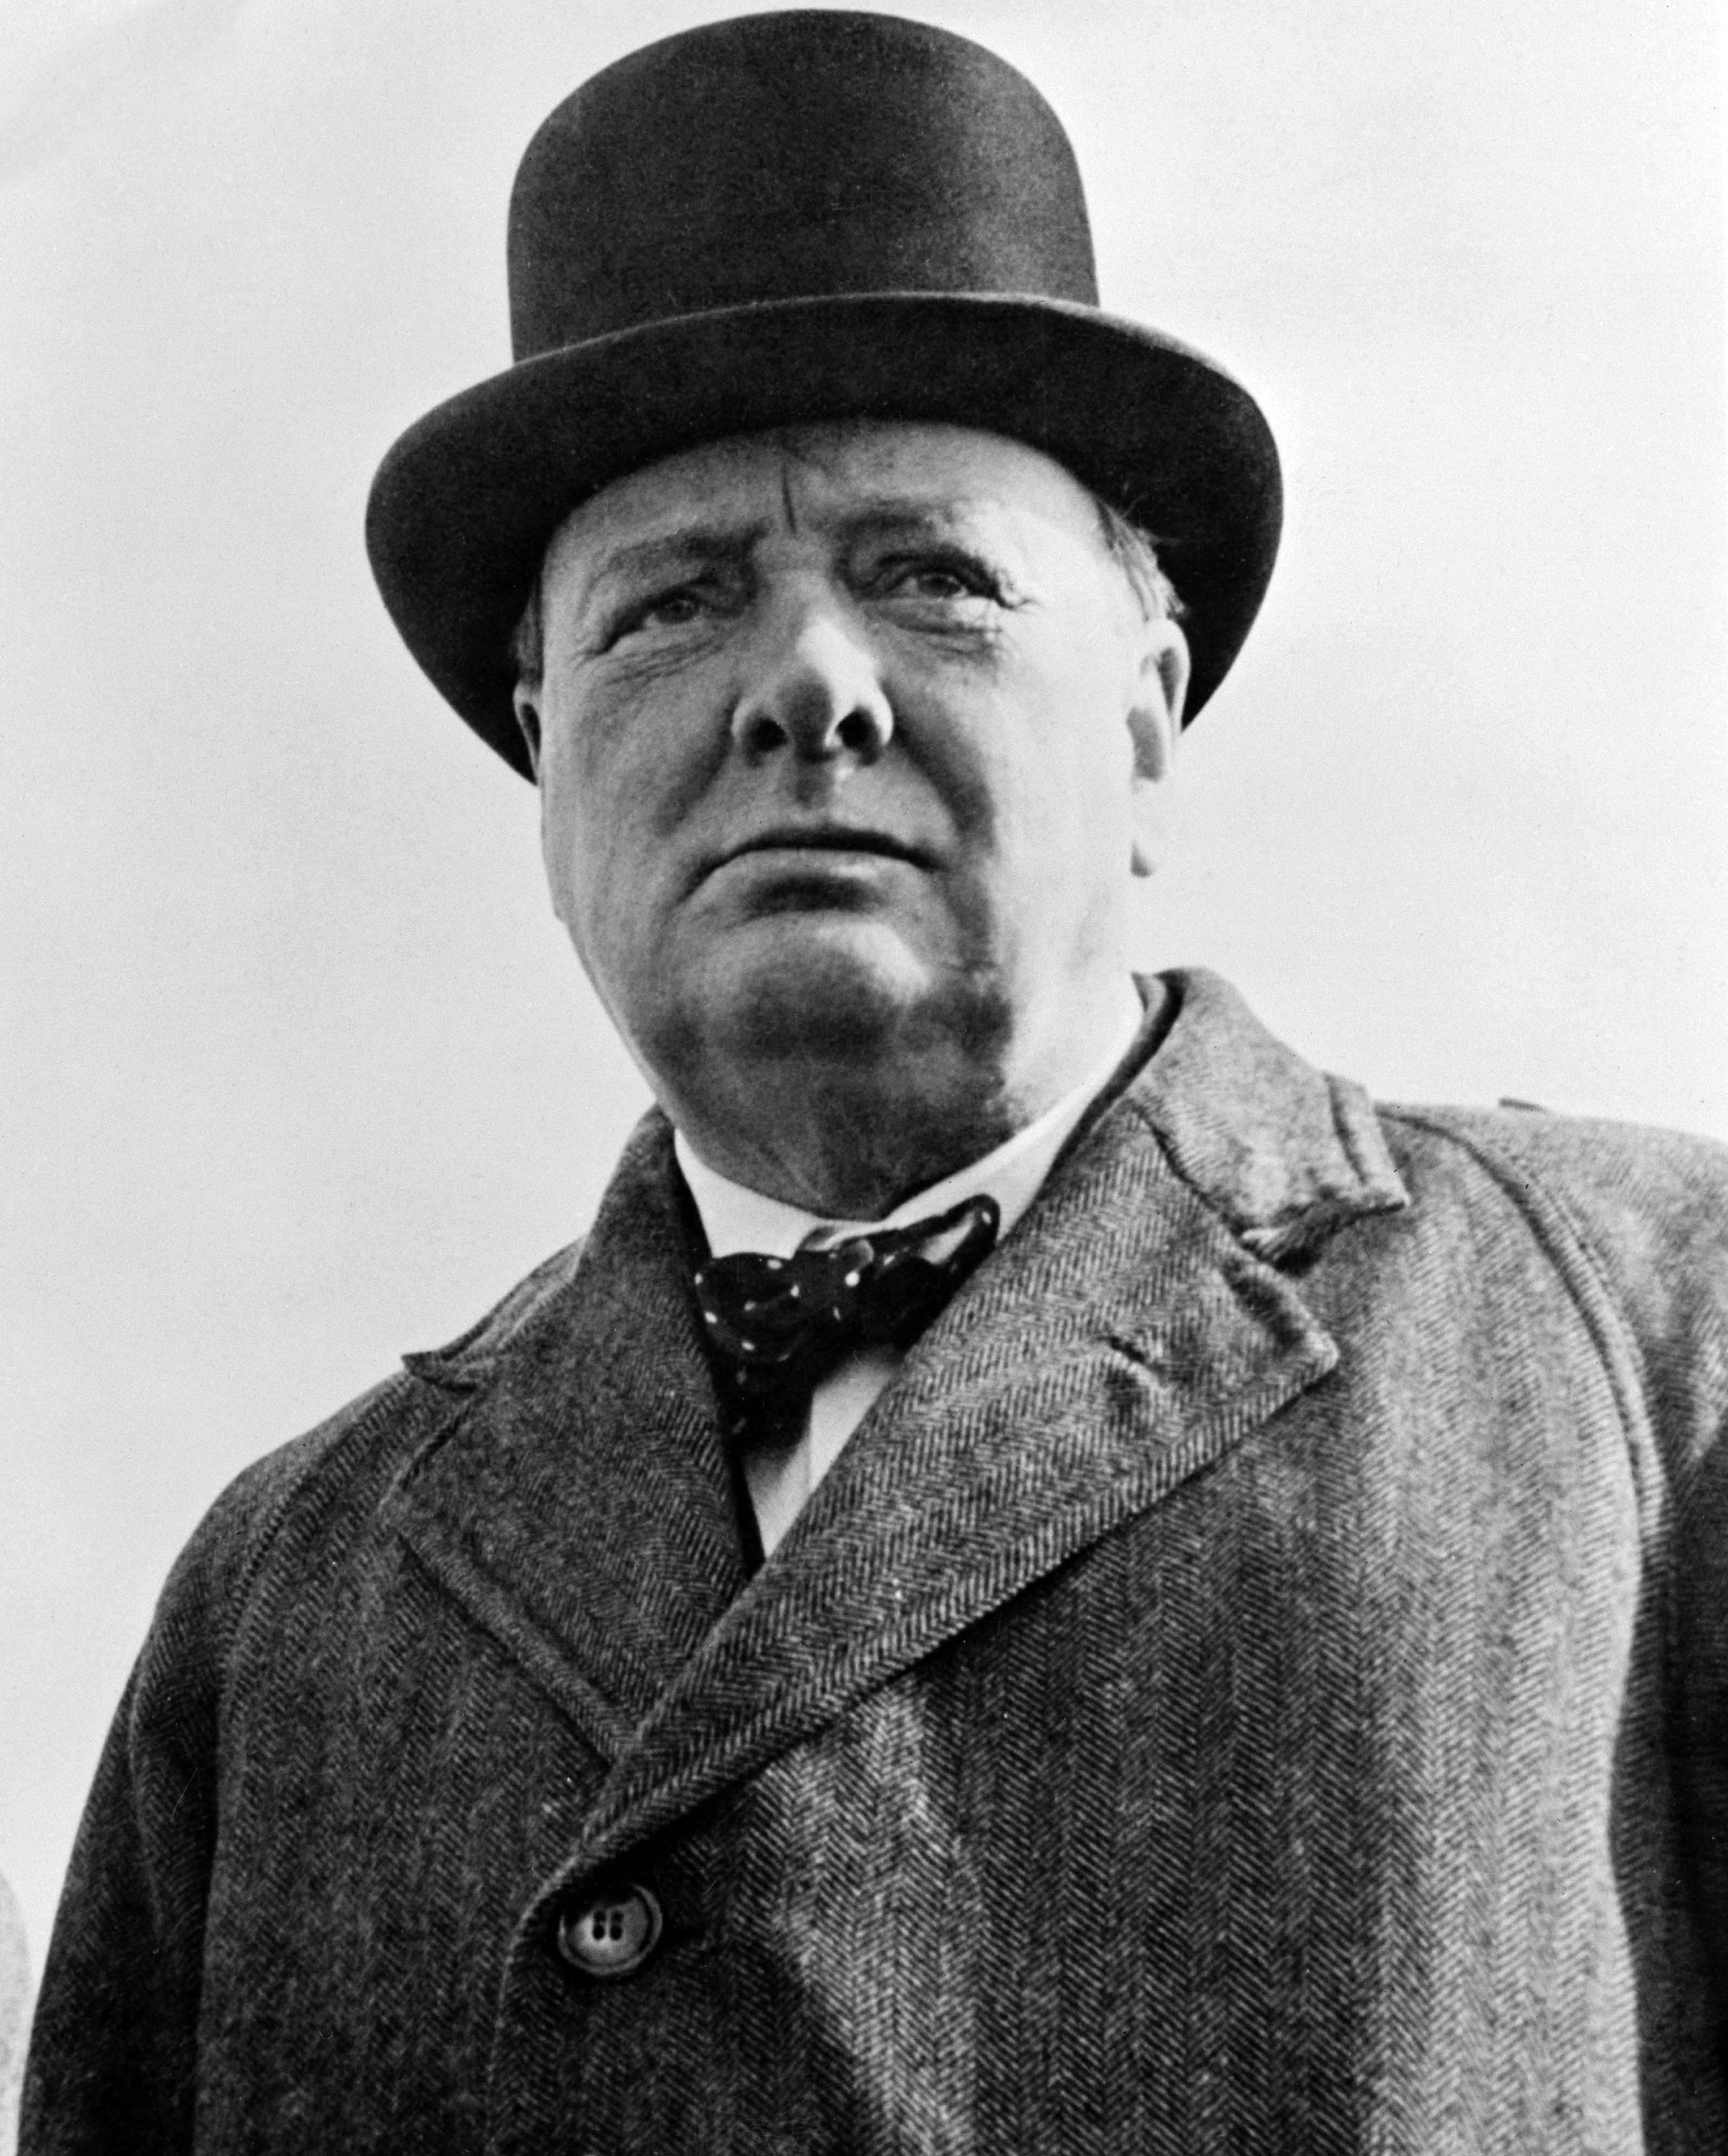 [Slika: Sir_Winston_S_Churchill.jpg]